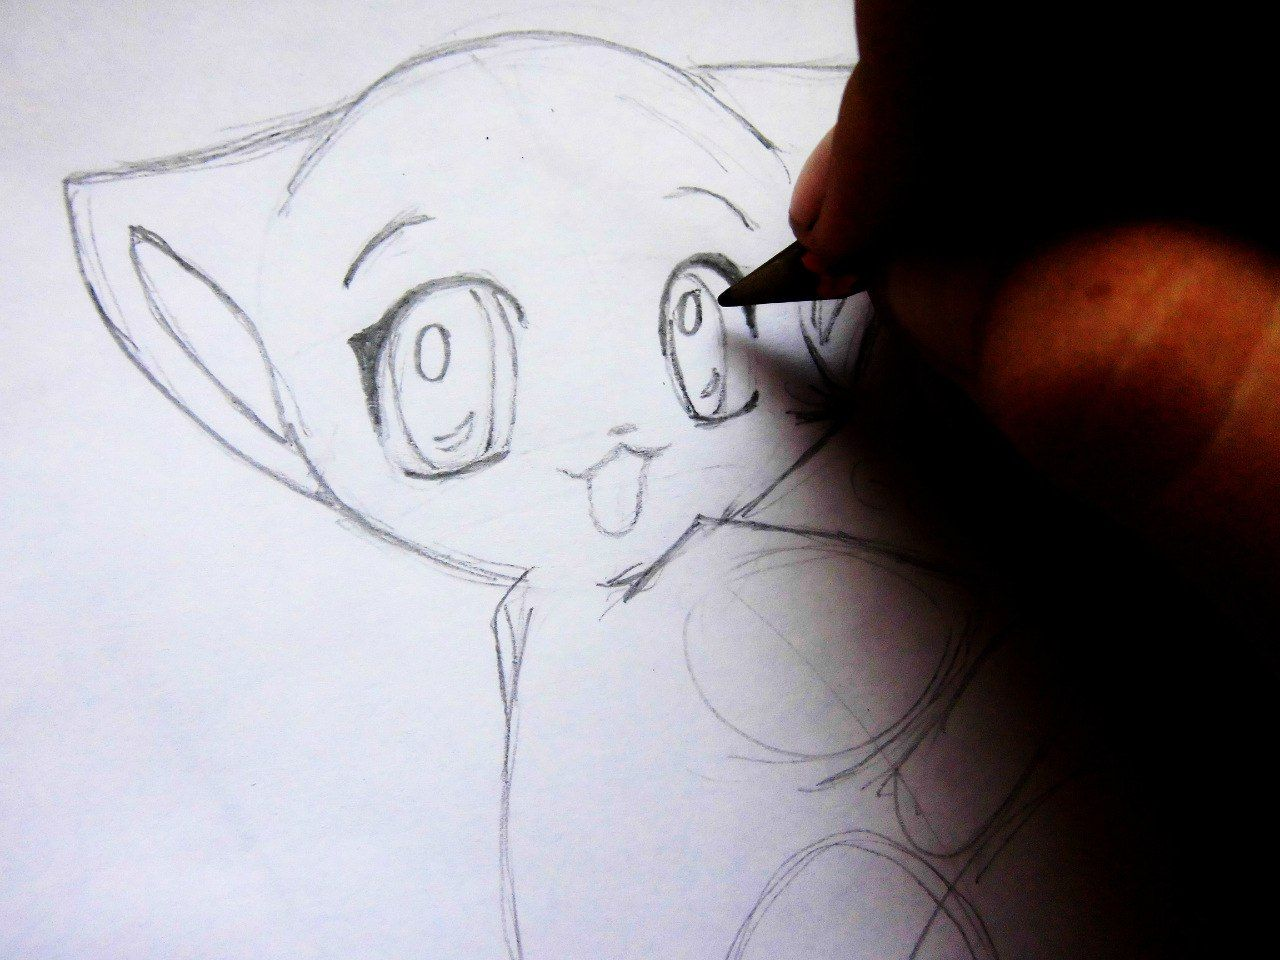 We draw an anime the girl a pencil on paper 5